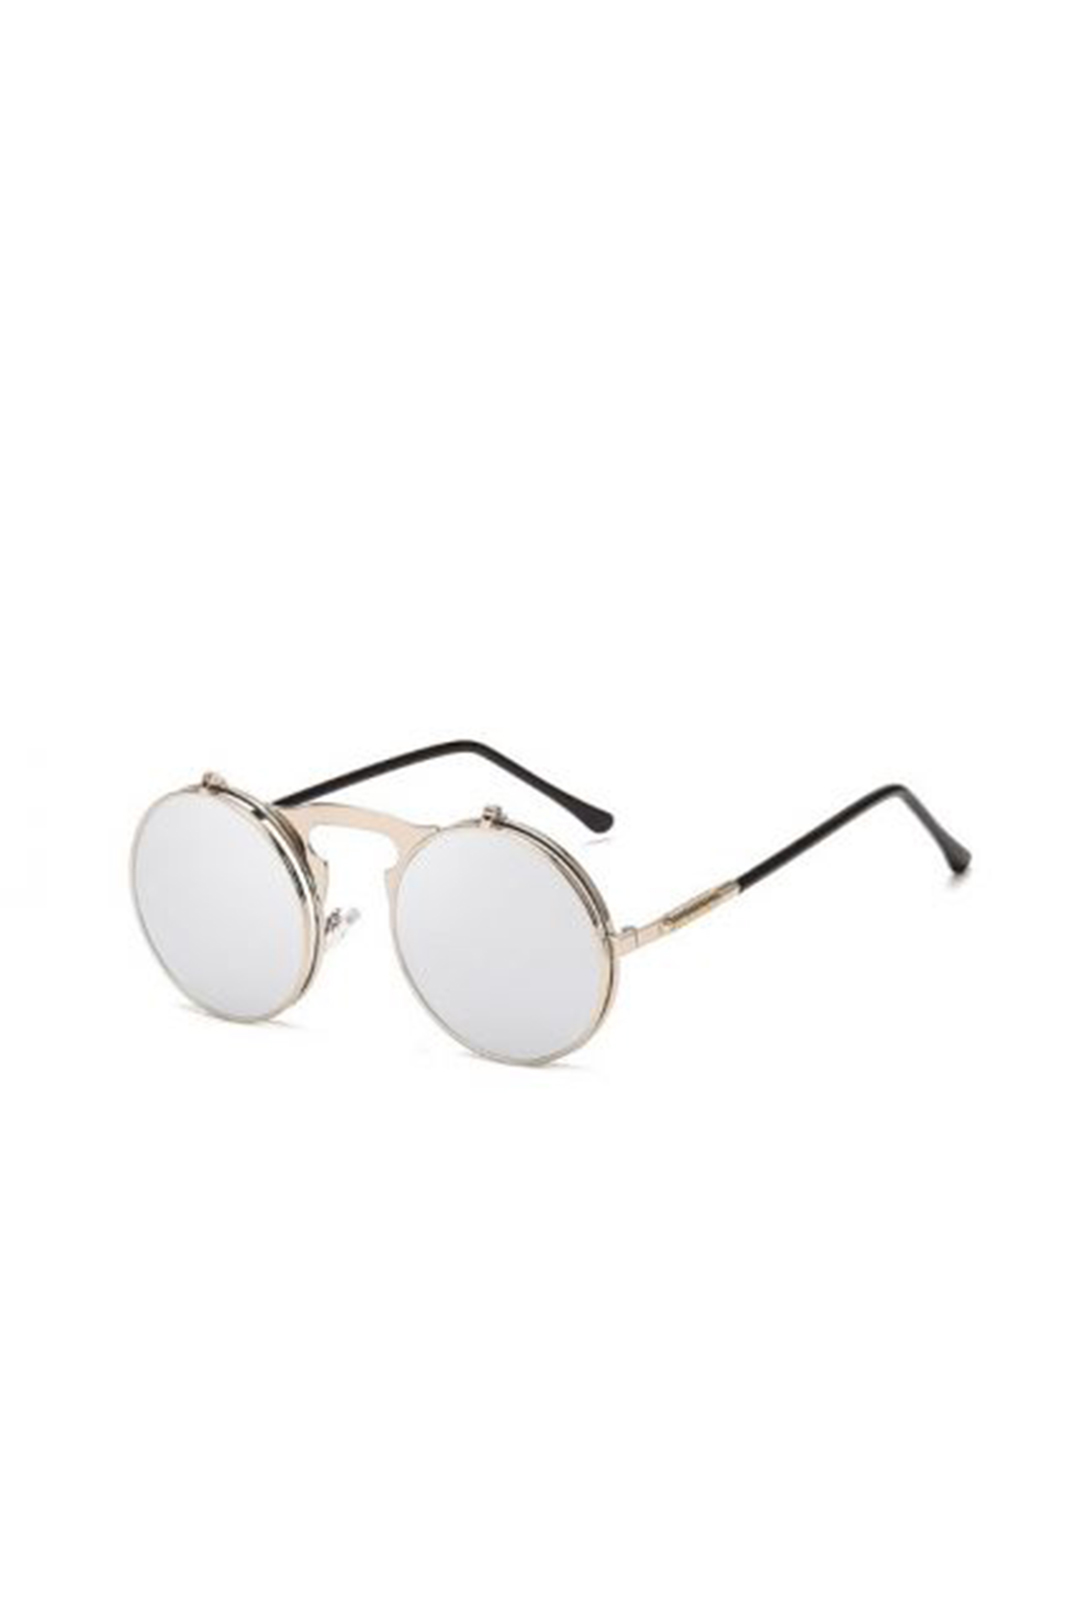 Sunglasses Round Mirrored Flip Up Silver